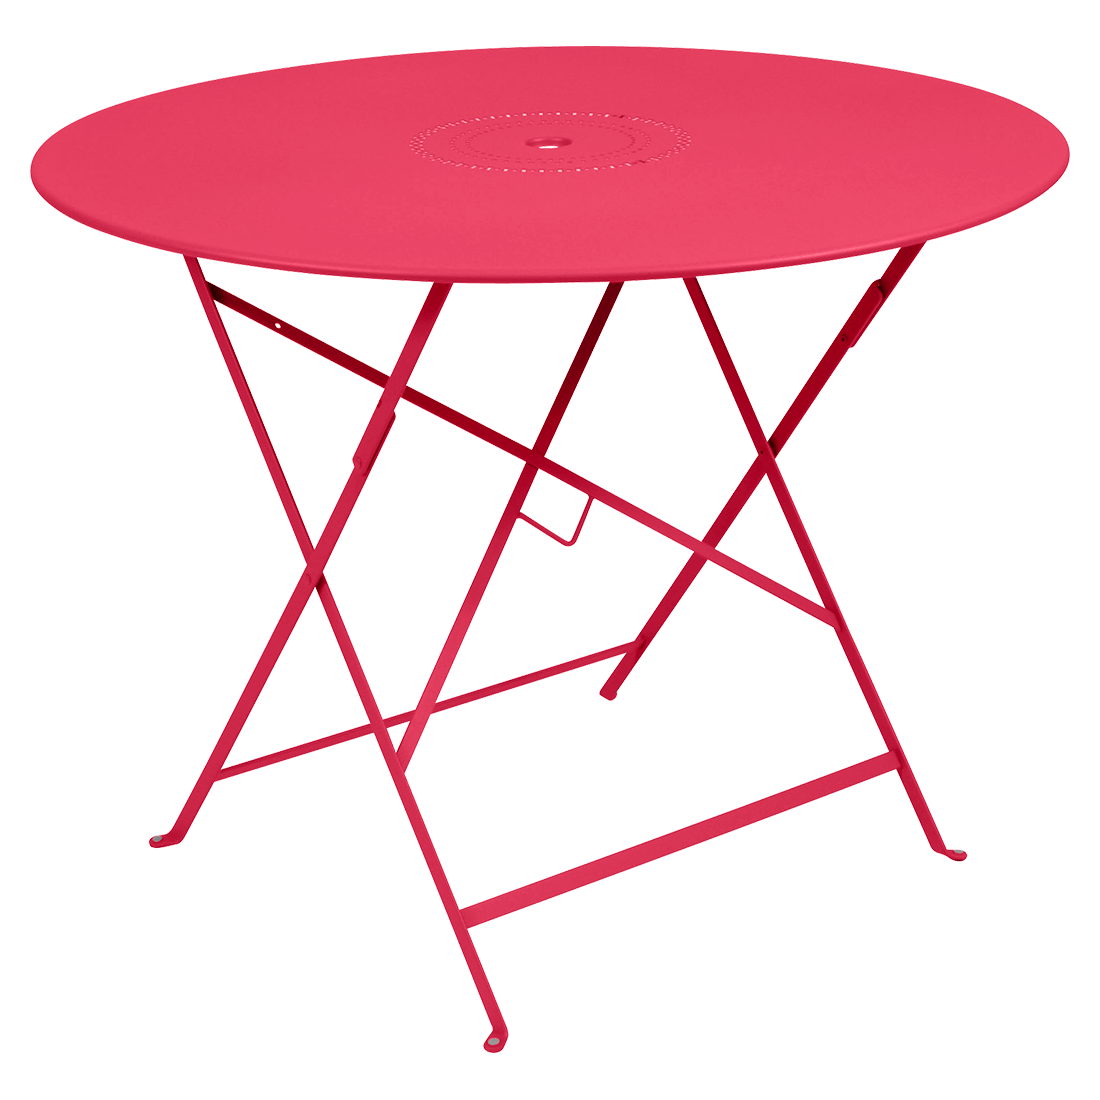 Table Ronde Jardin Metal Outdoor Round Tables Garden Furniture Fermob